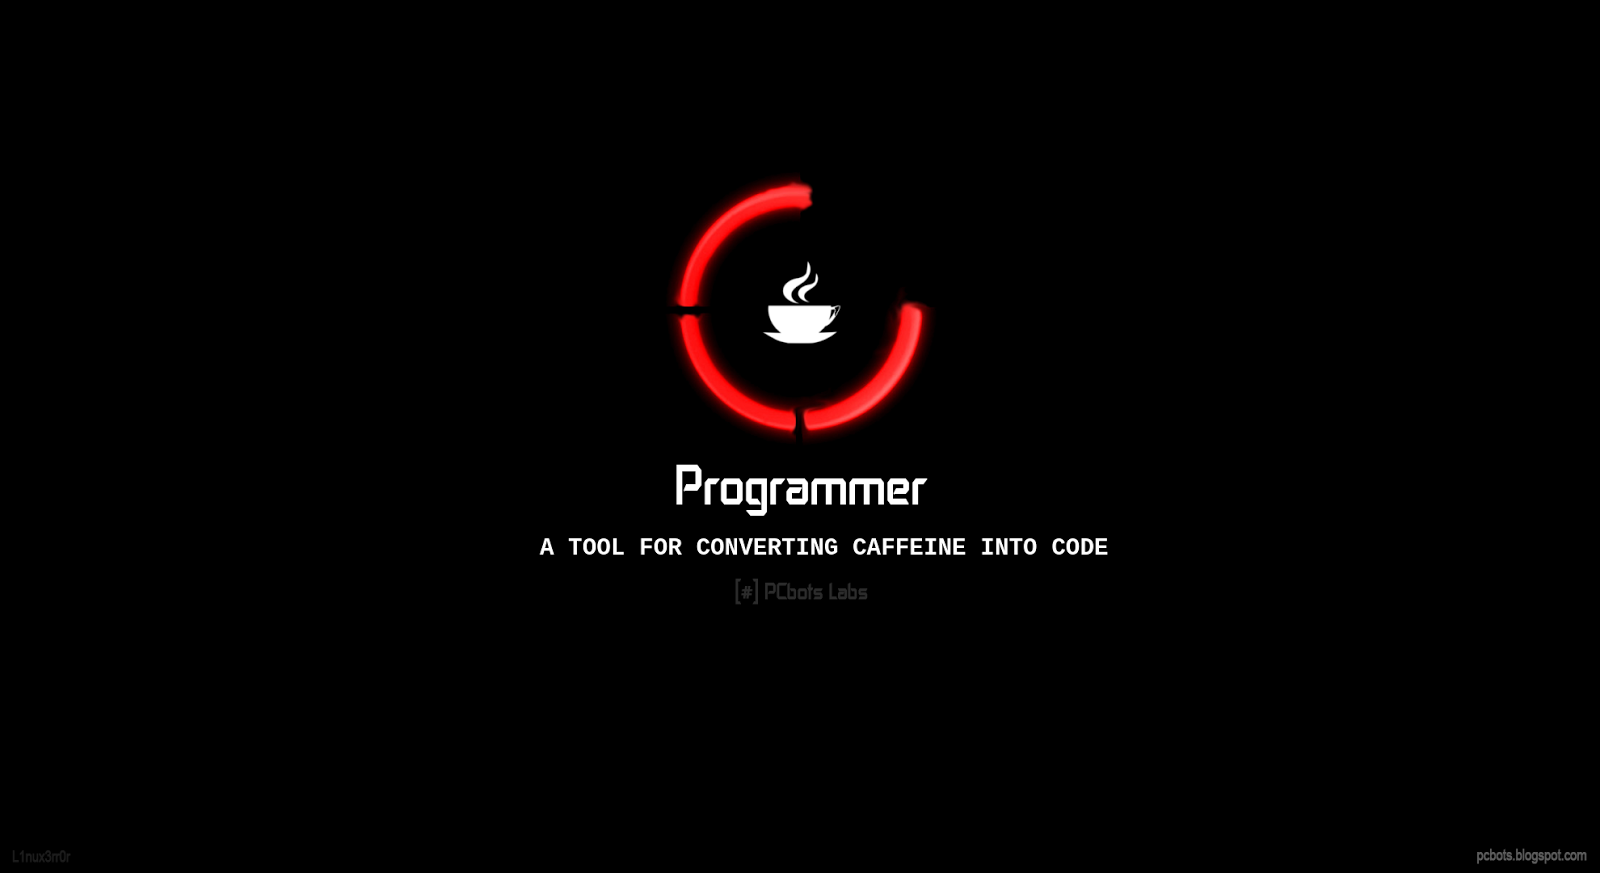 Programmer HD Wallpaper by PCbots